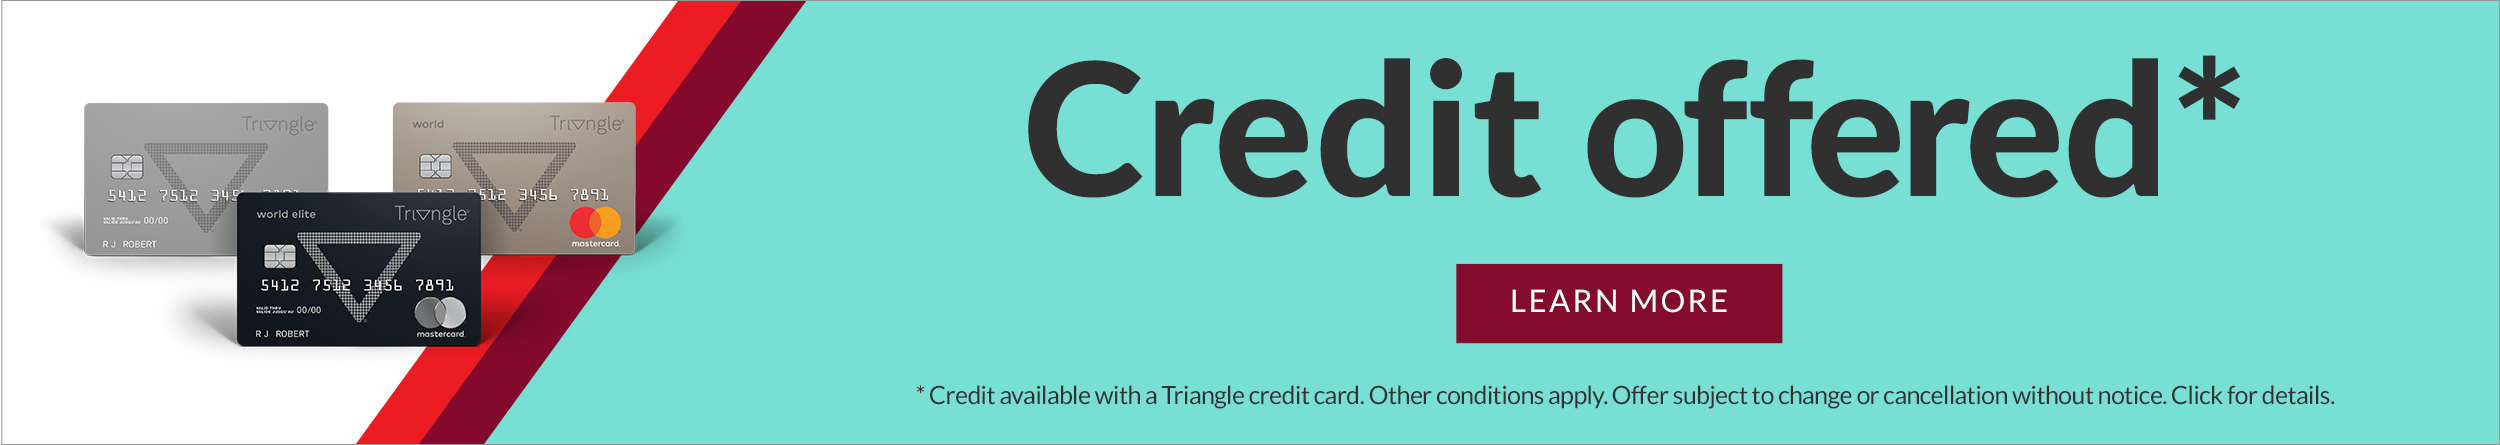 Triangle credit offer